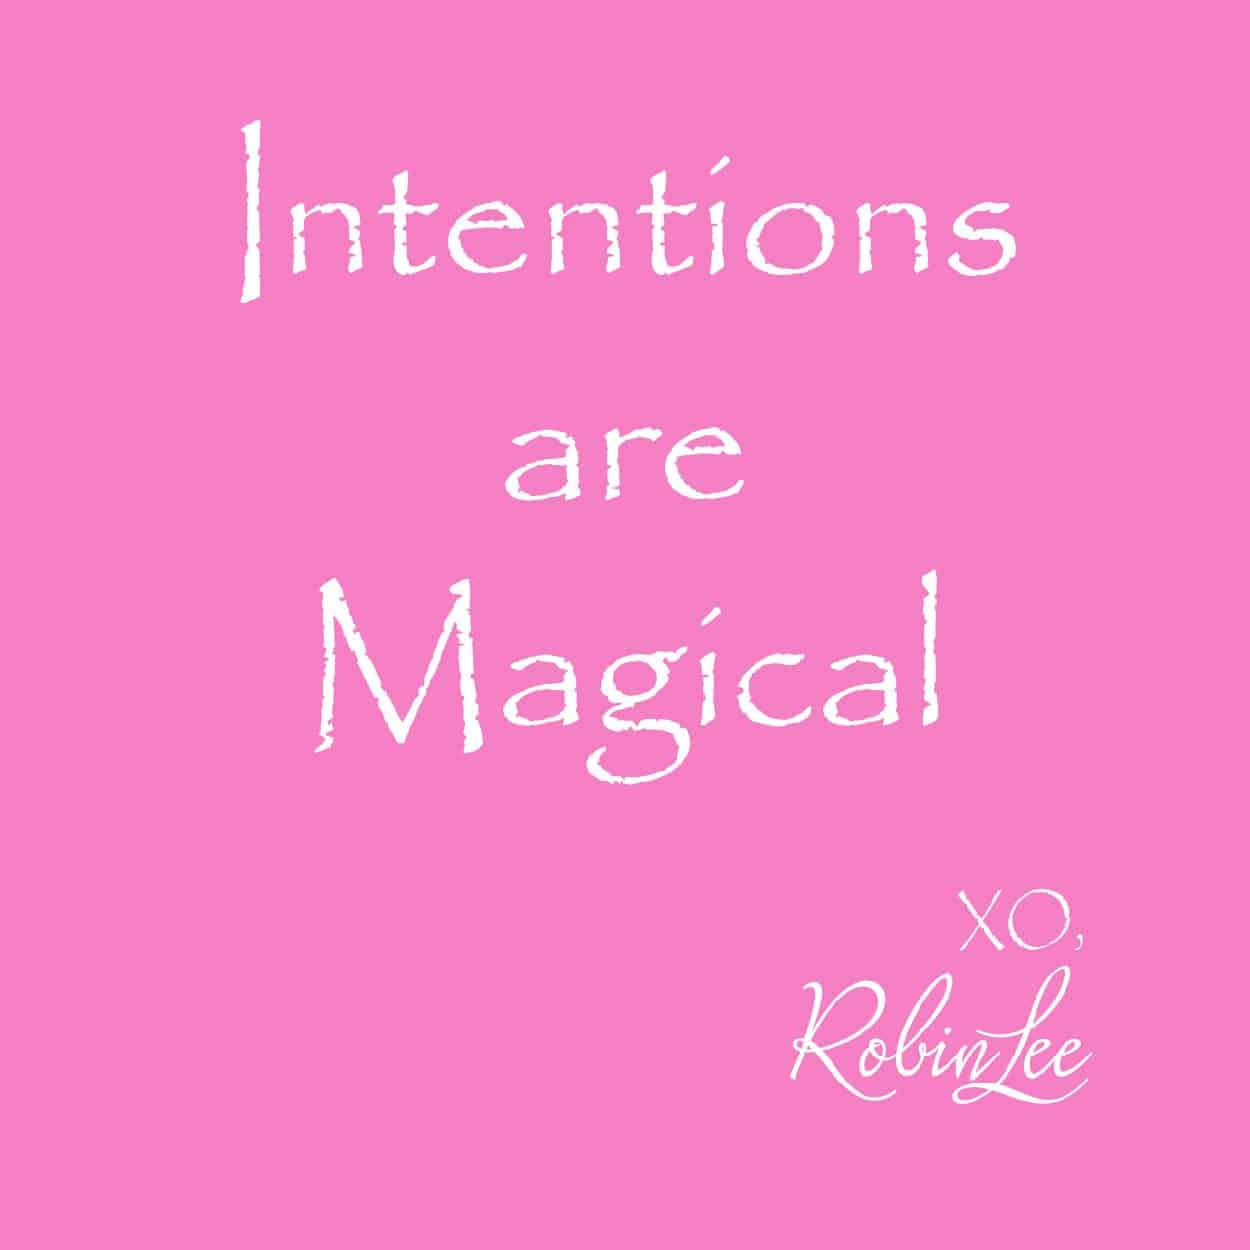 Intentions are Magical